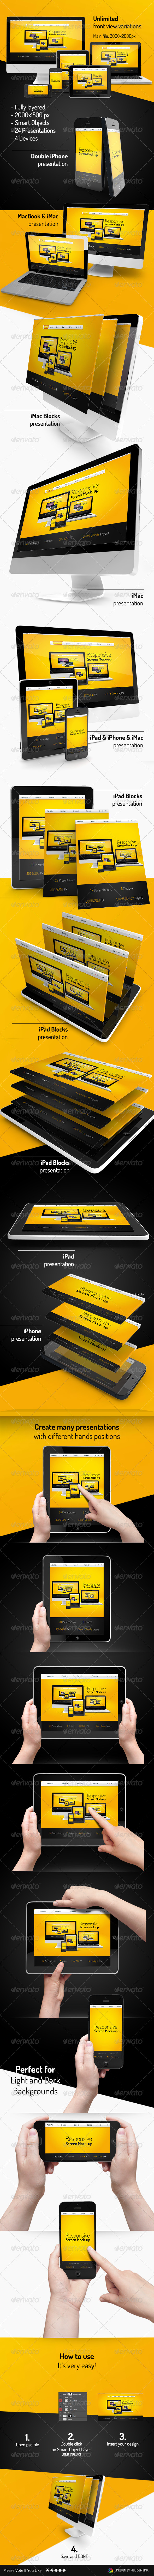 GraphicRiver Responsive Screen Mock-up 7849742